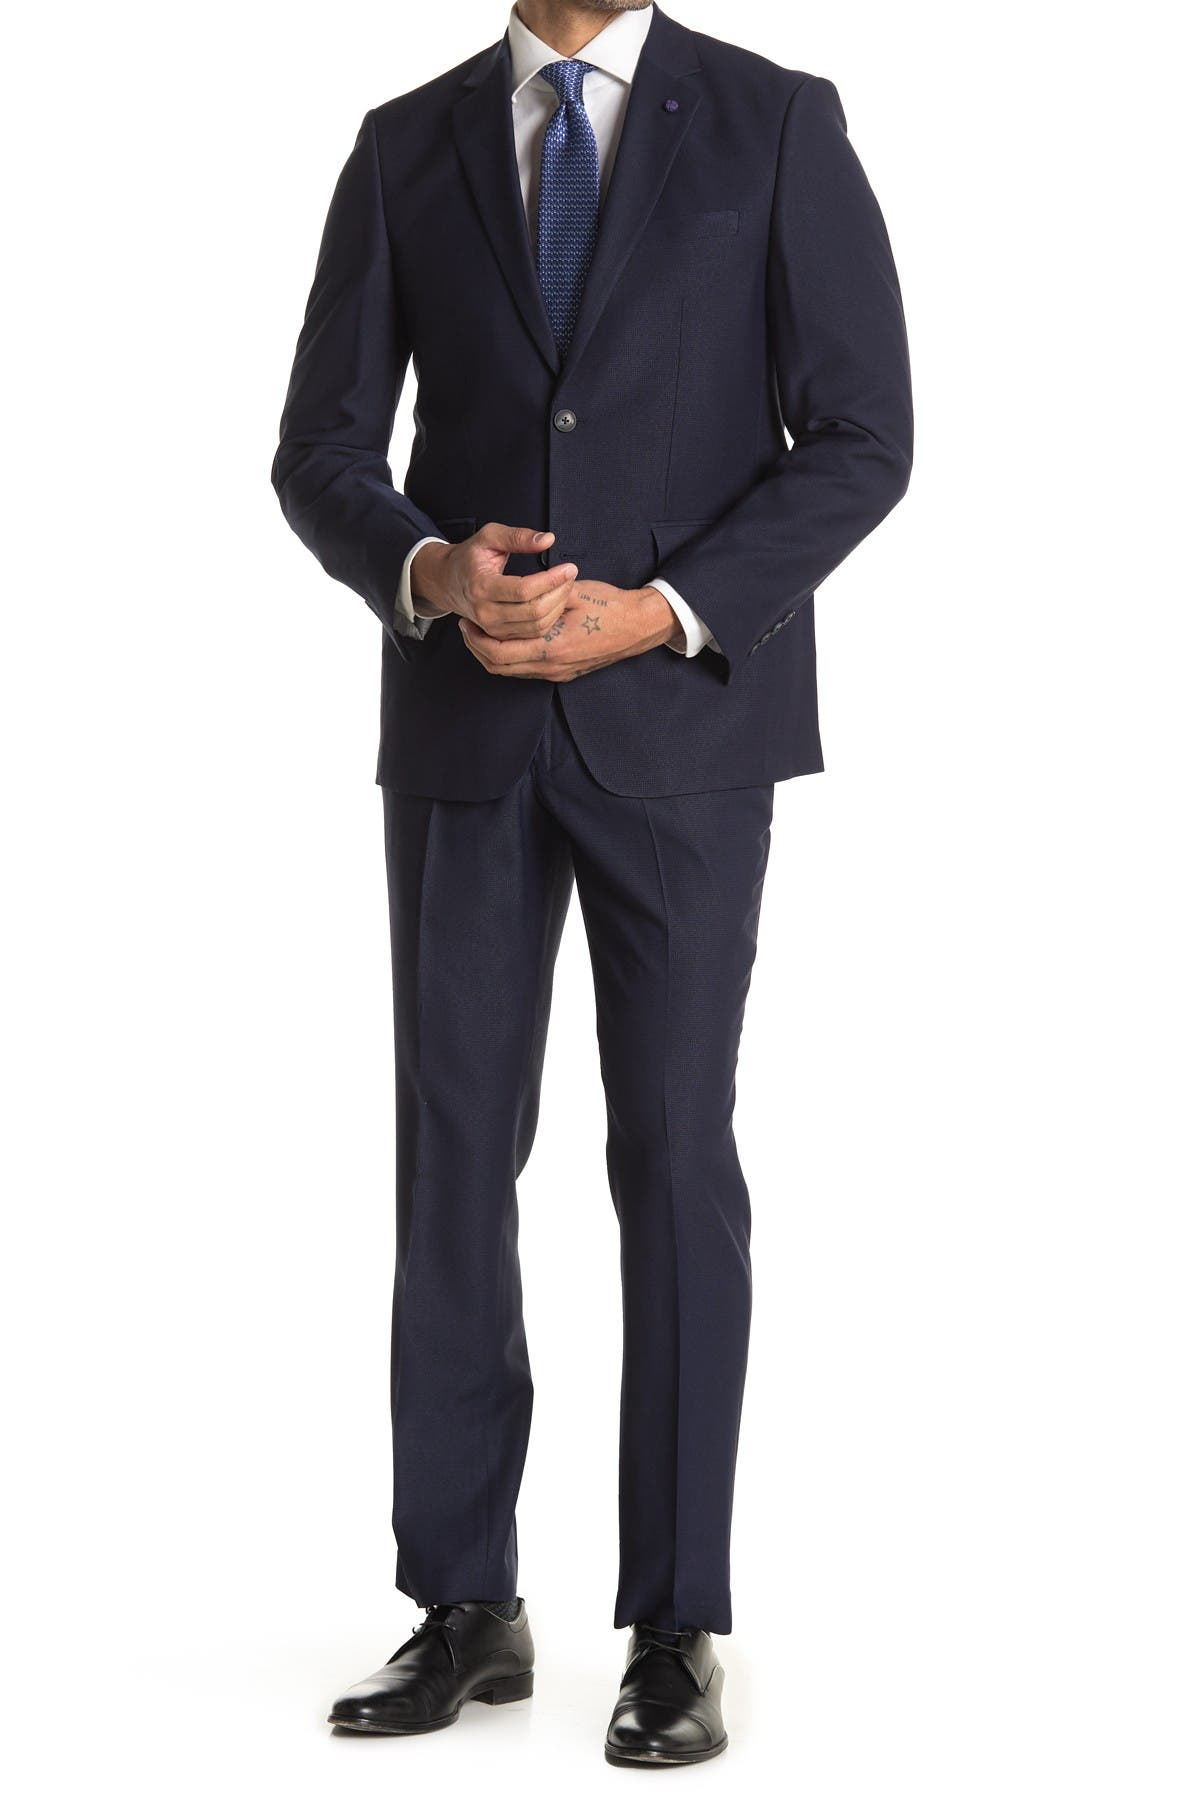 Image of Perry Ellis Navy Dobby Two Button Notch Lapel Slim Fit Suit